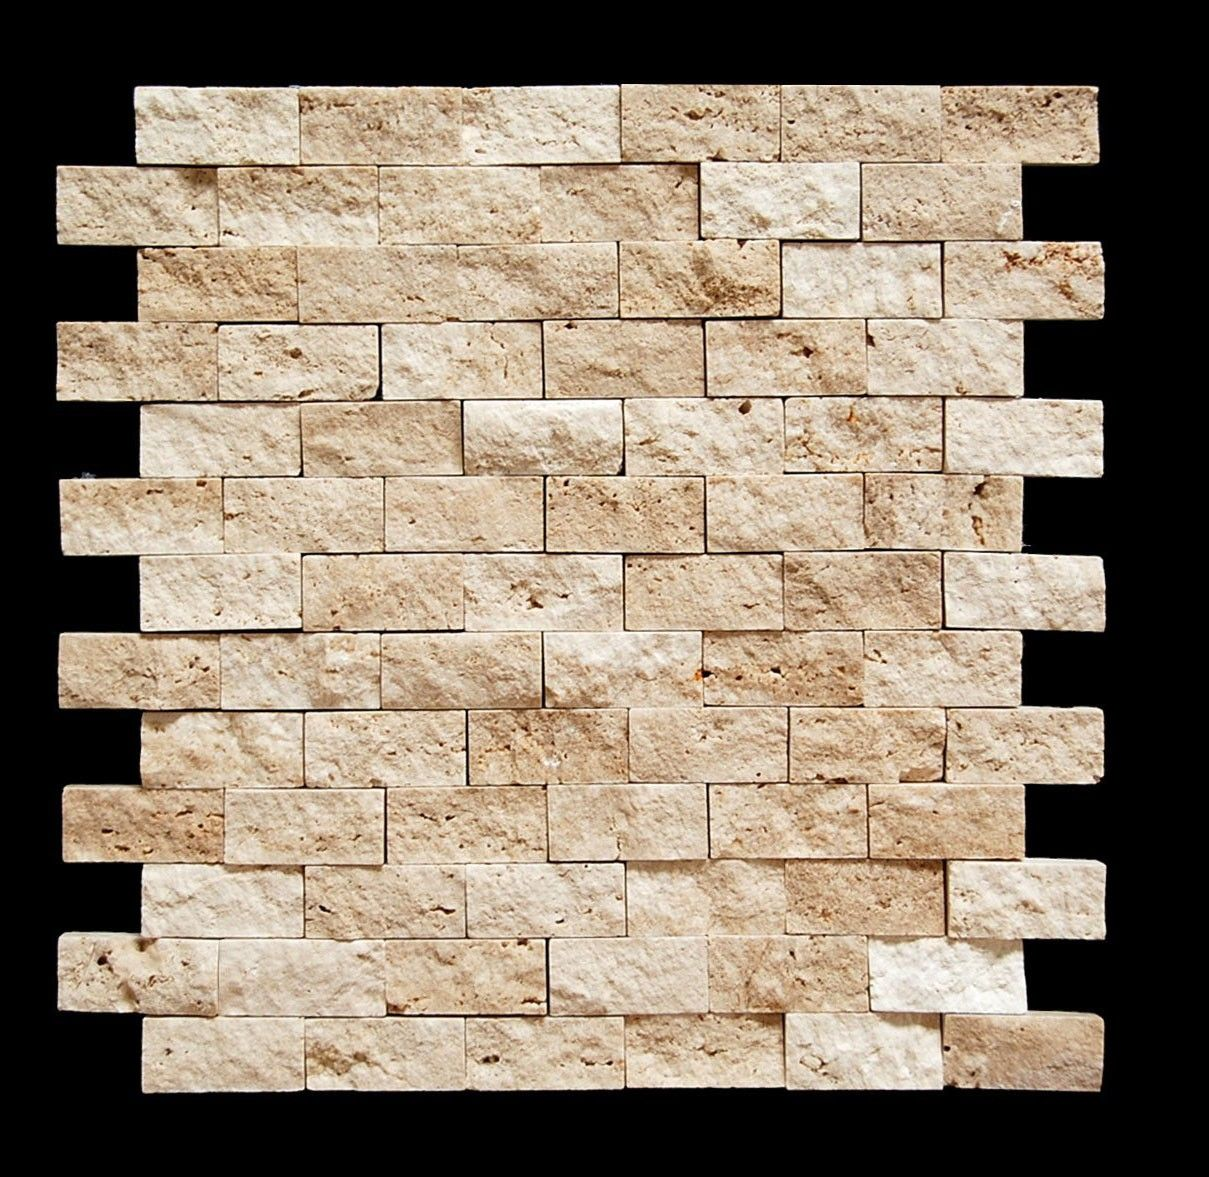 Light 1 x 2 split face travertine mosaic tile so cool for a light 1 x 2 split face travertine mosaic tile so cool for a kitchen dailygadgetfo Image collections